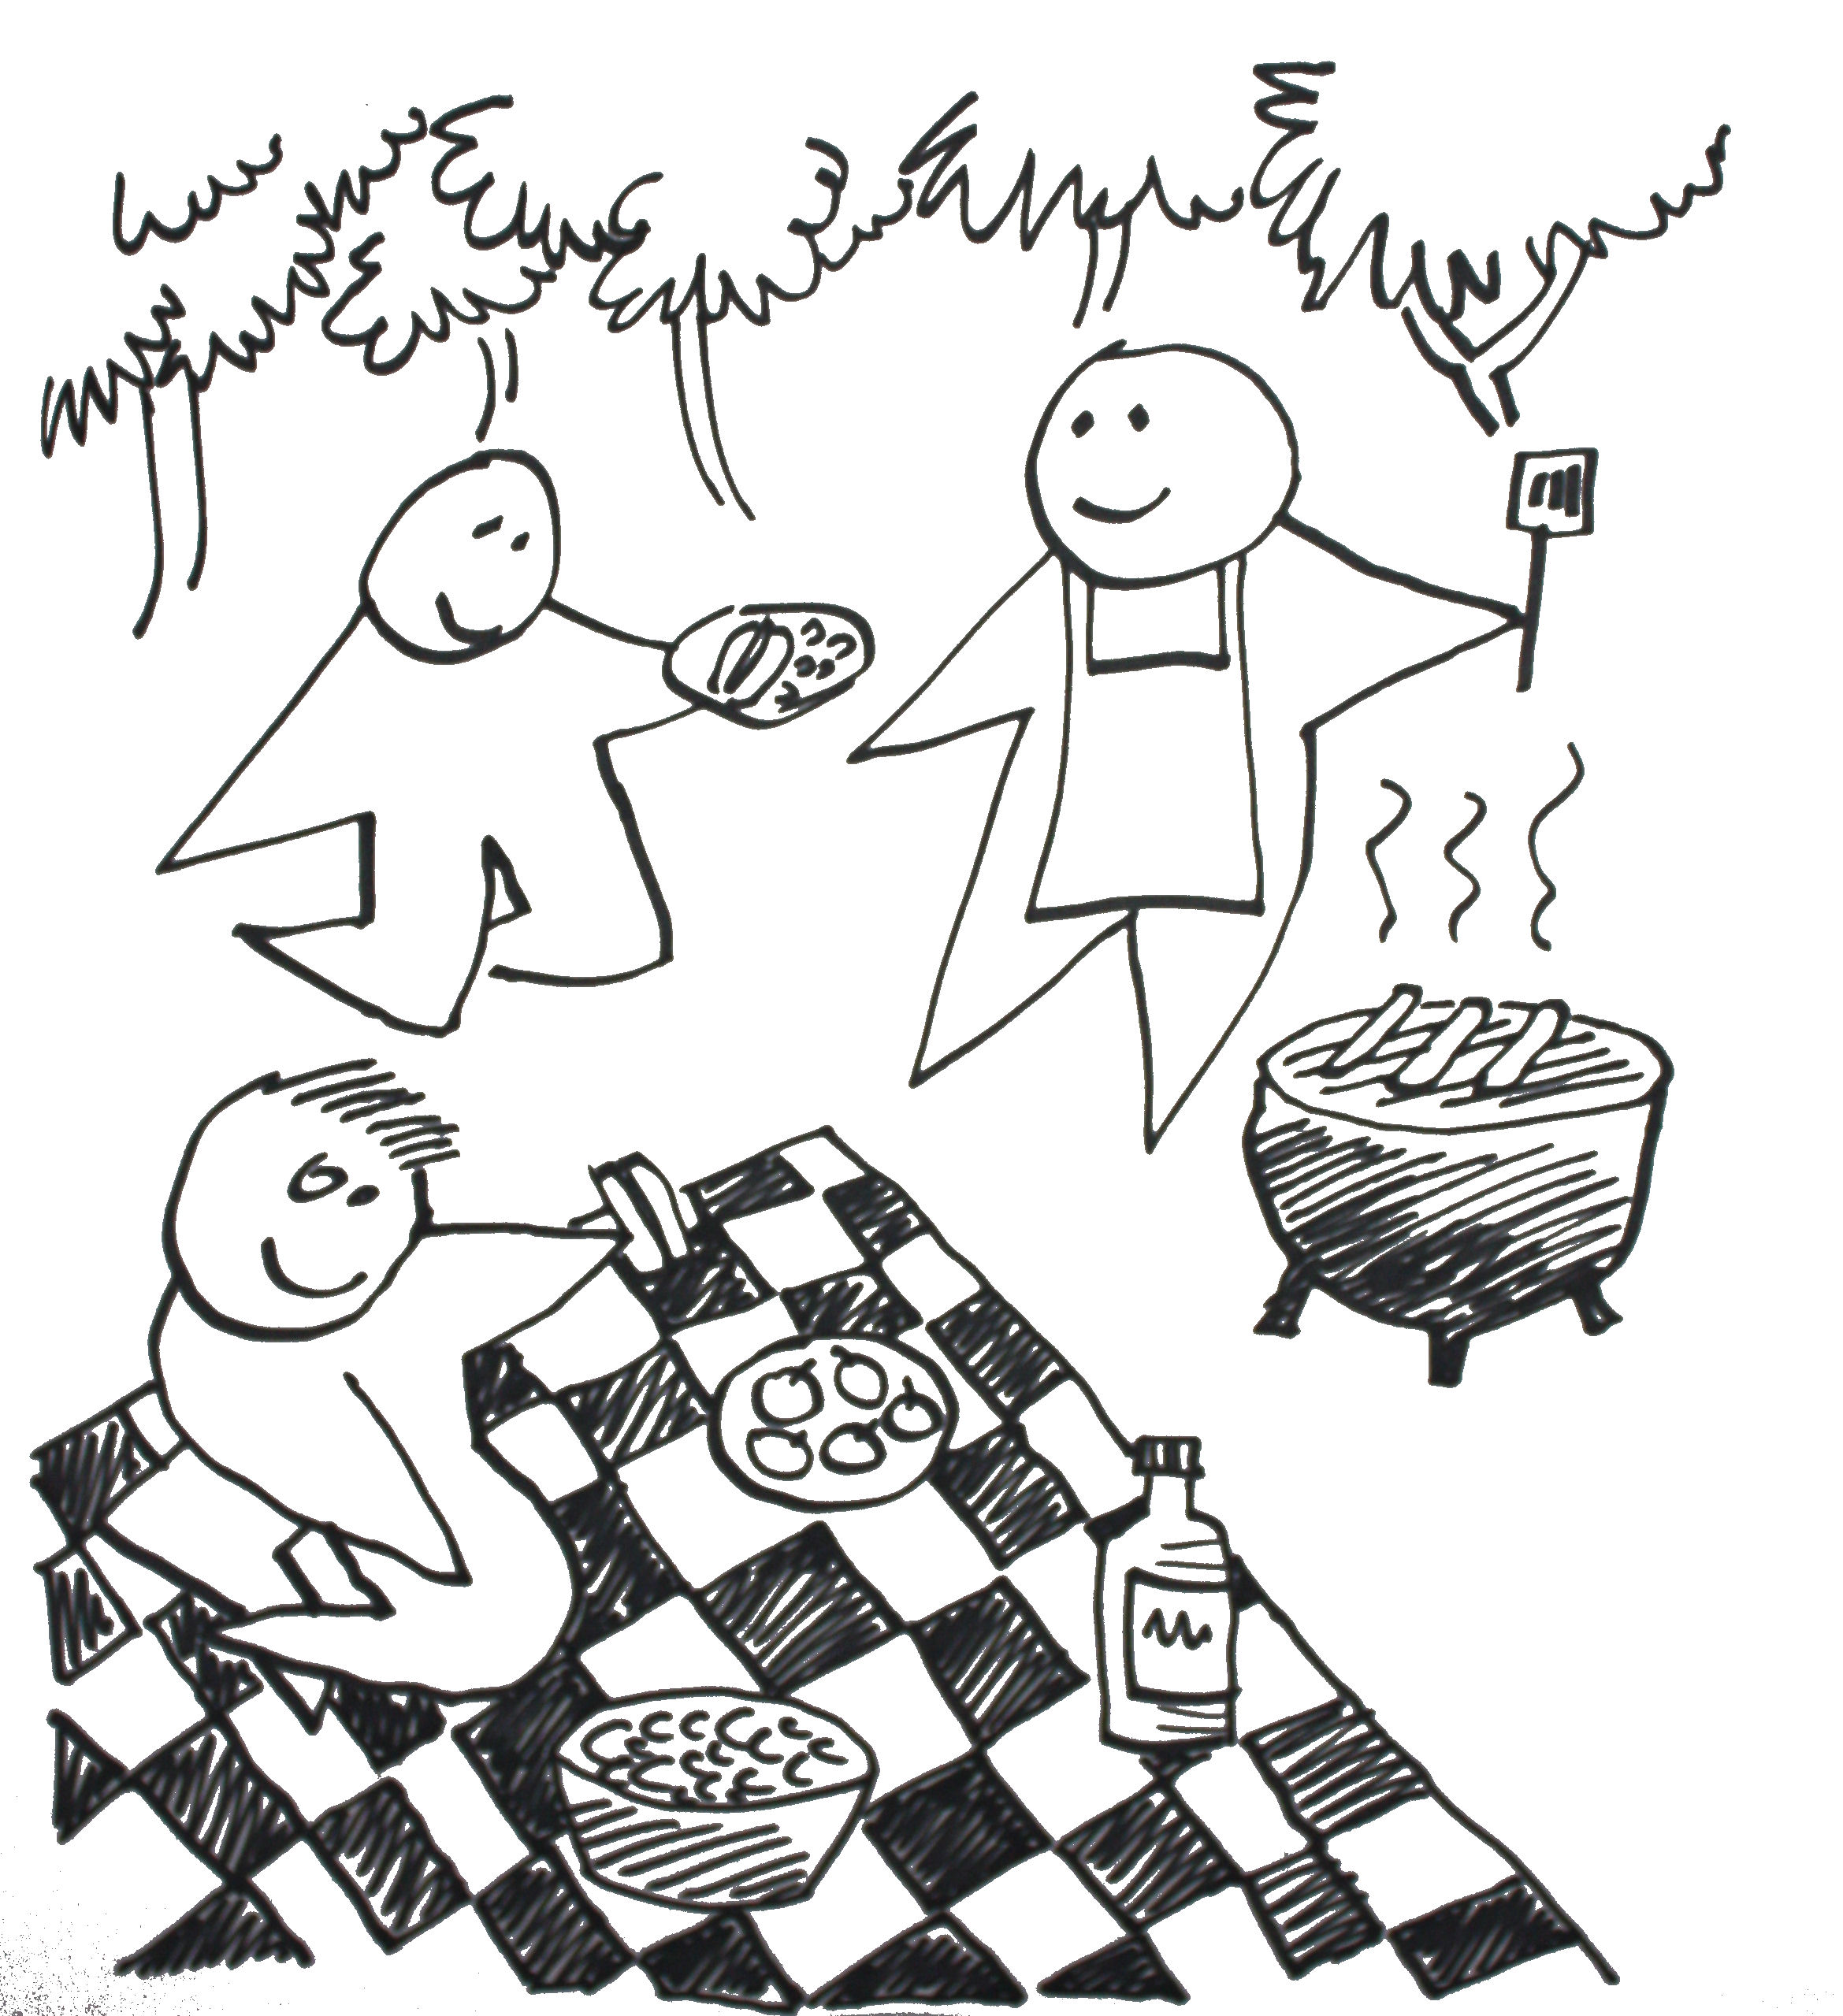 Have a Picnic with Friends!